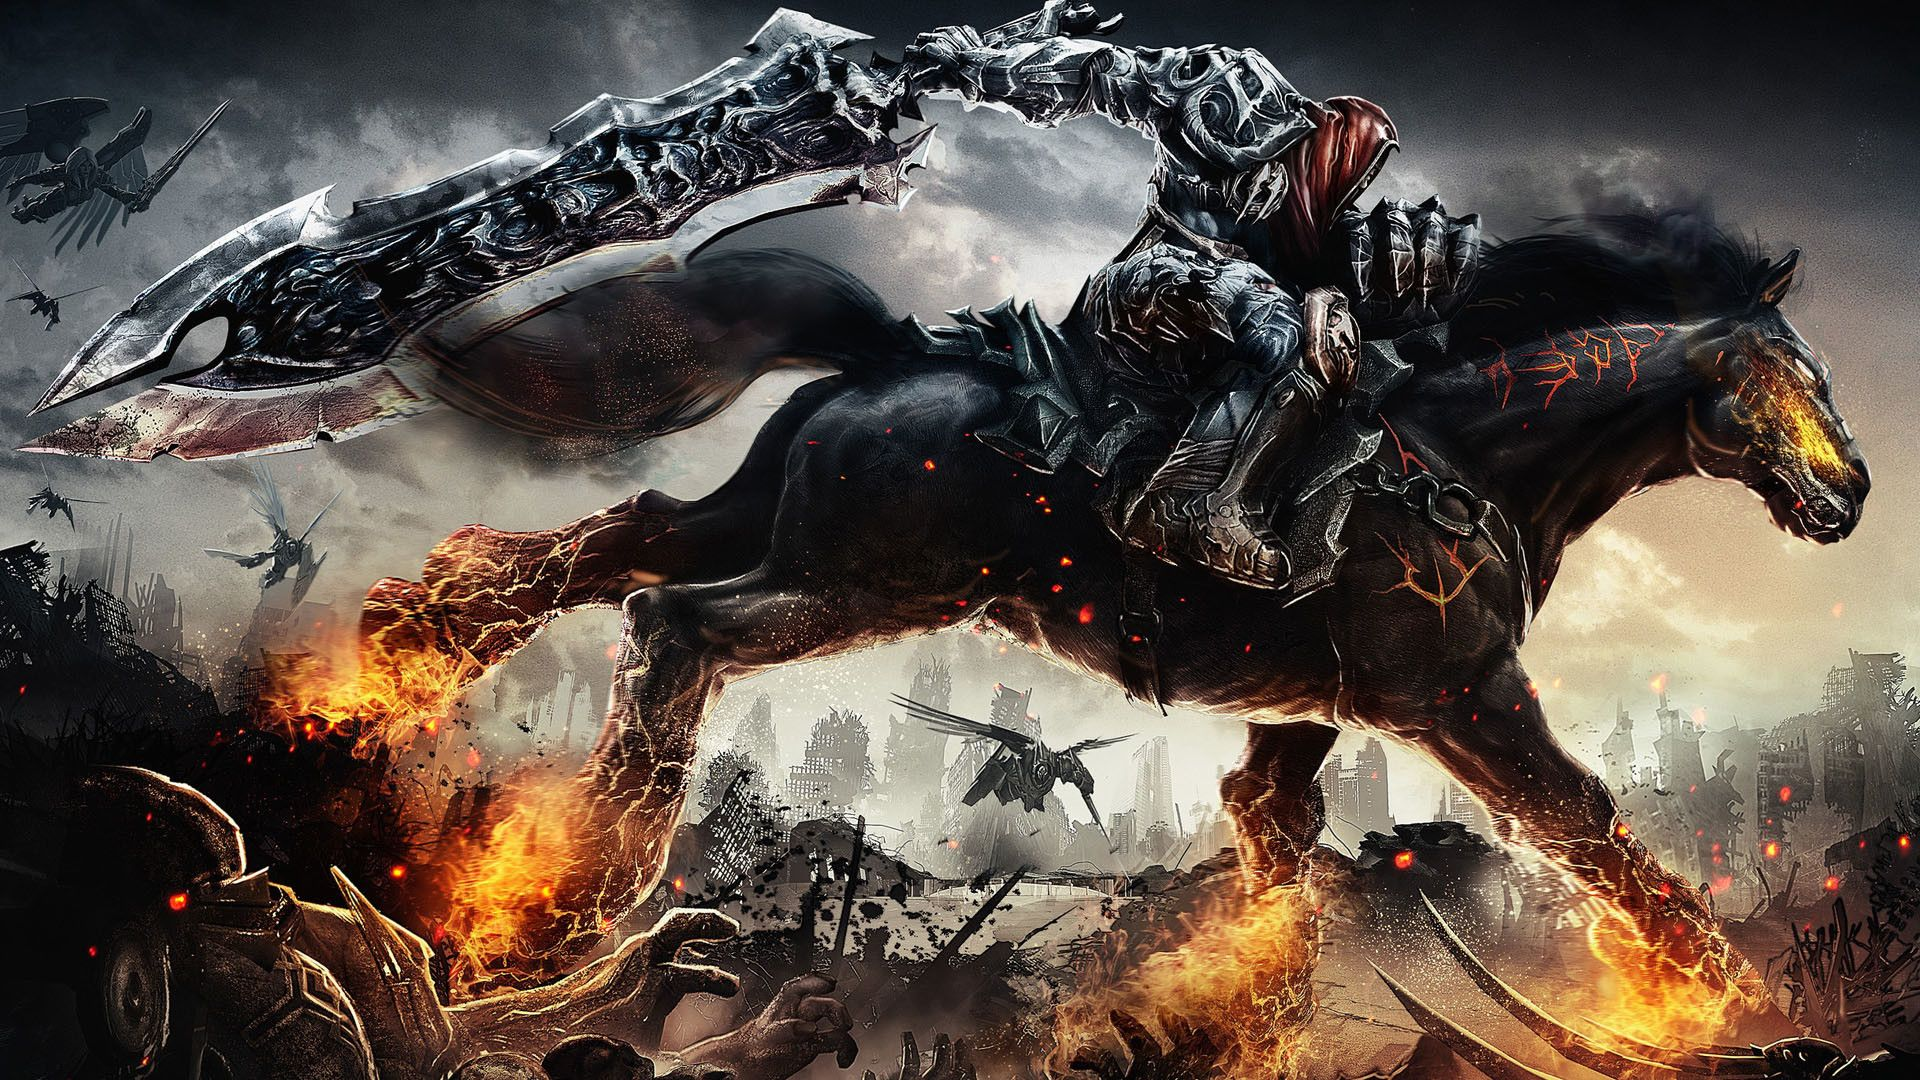 1920x1080 Cool Backgrounds Hd 1080p Gaming Horse Wallpaper